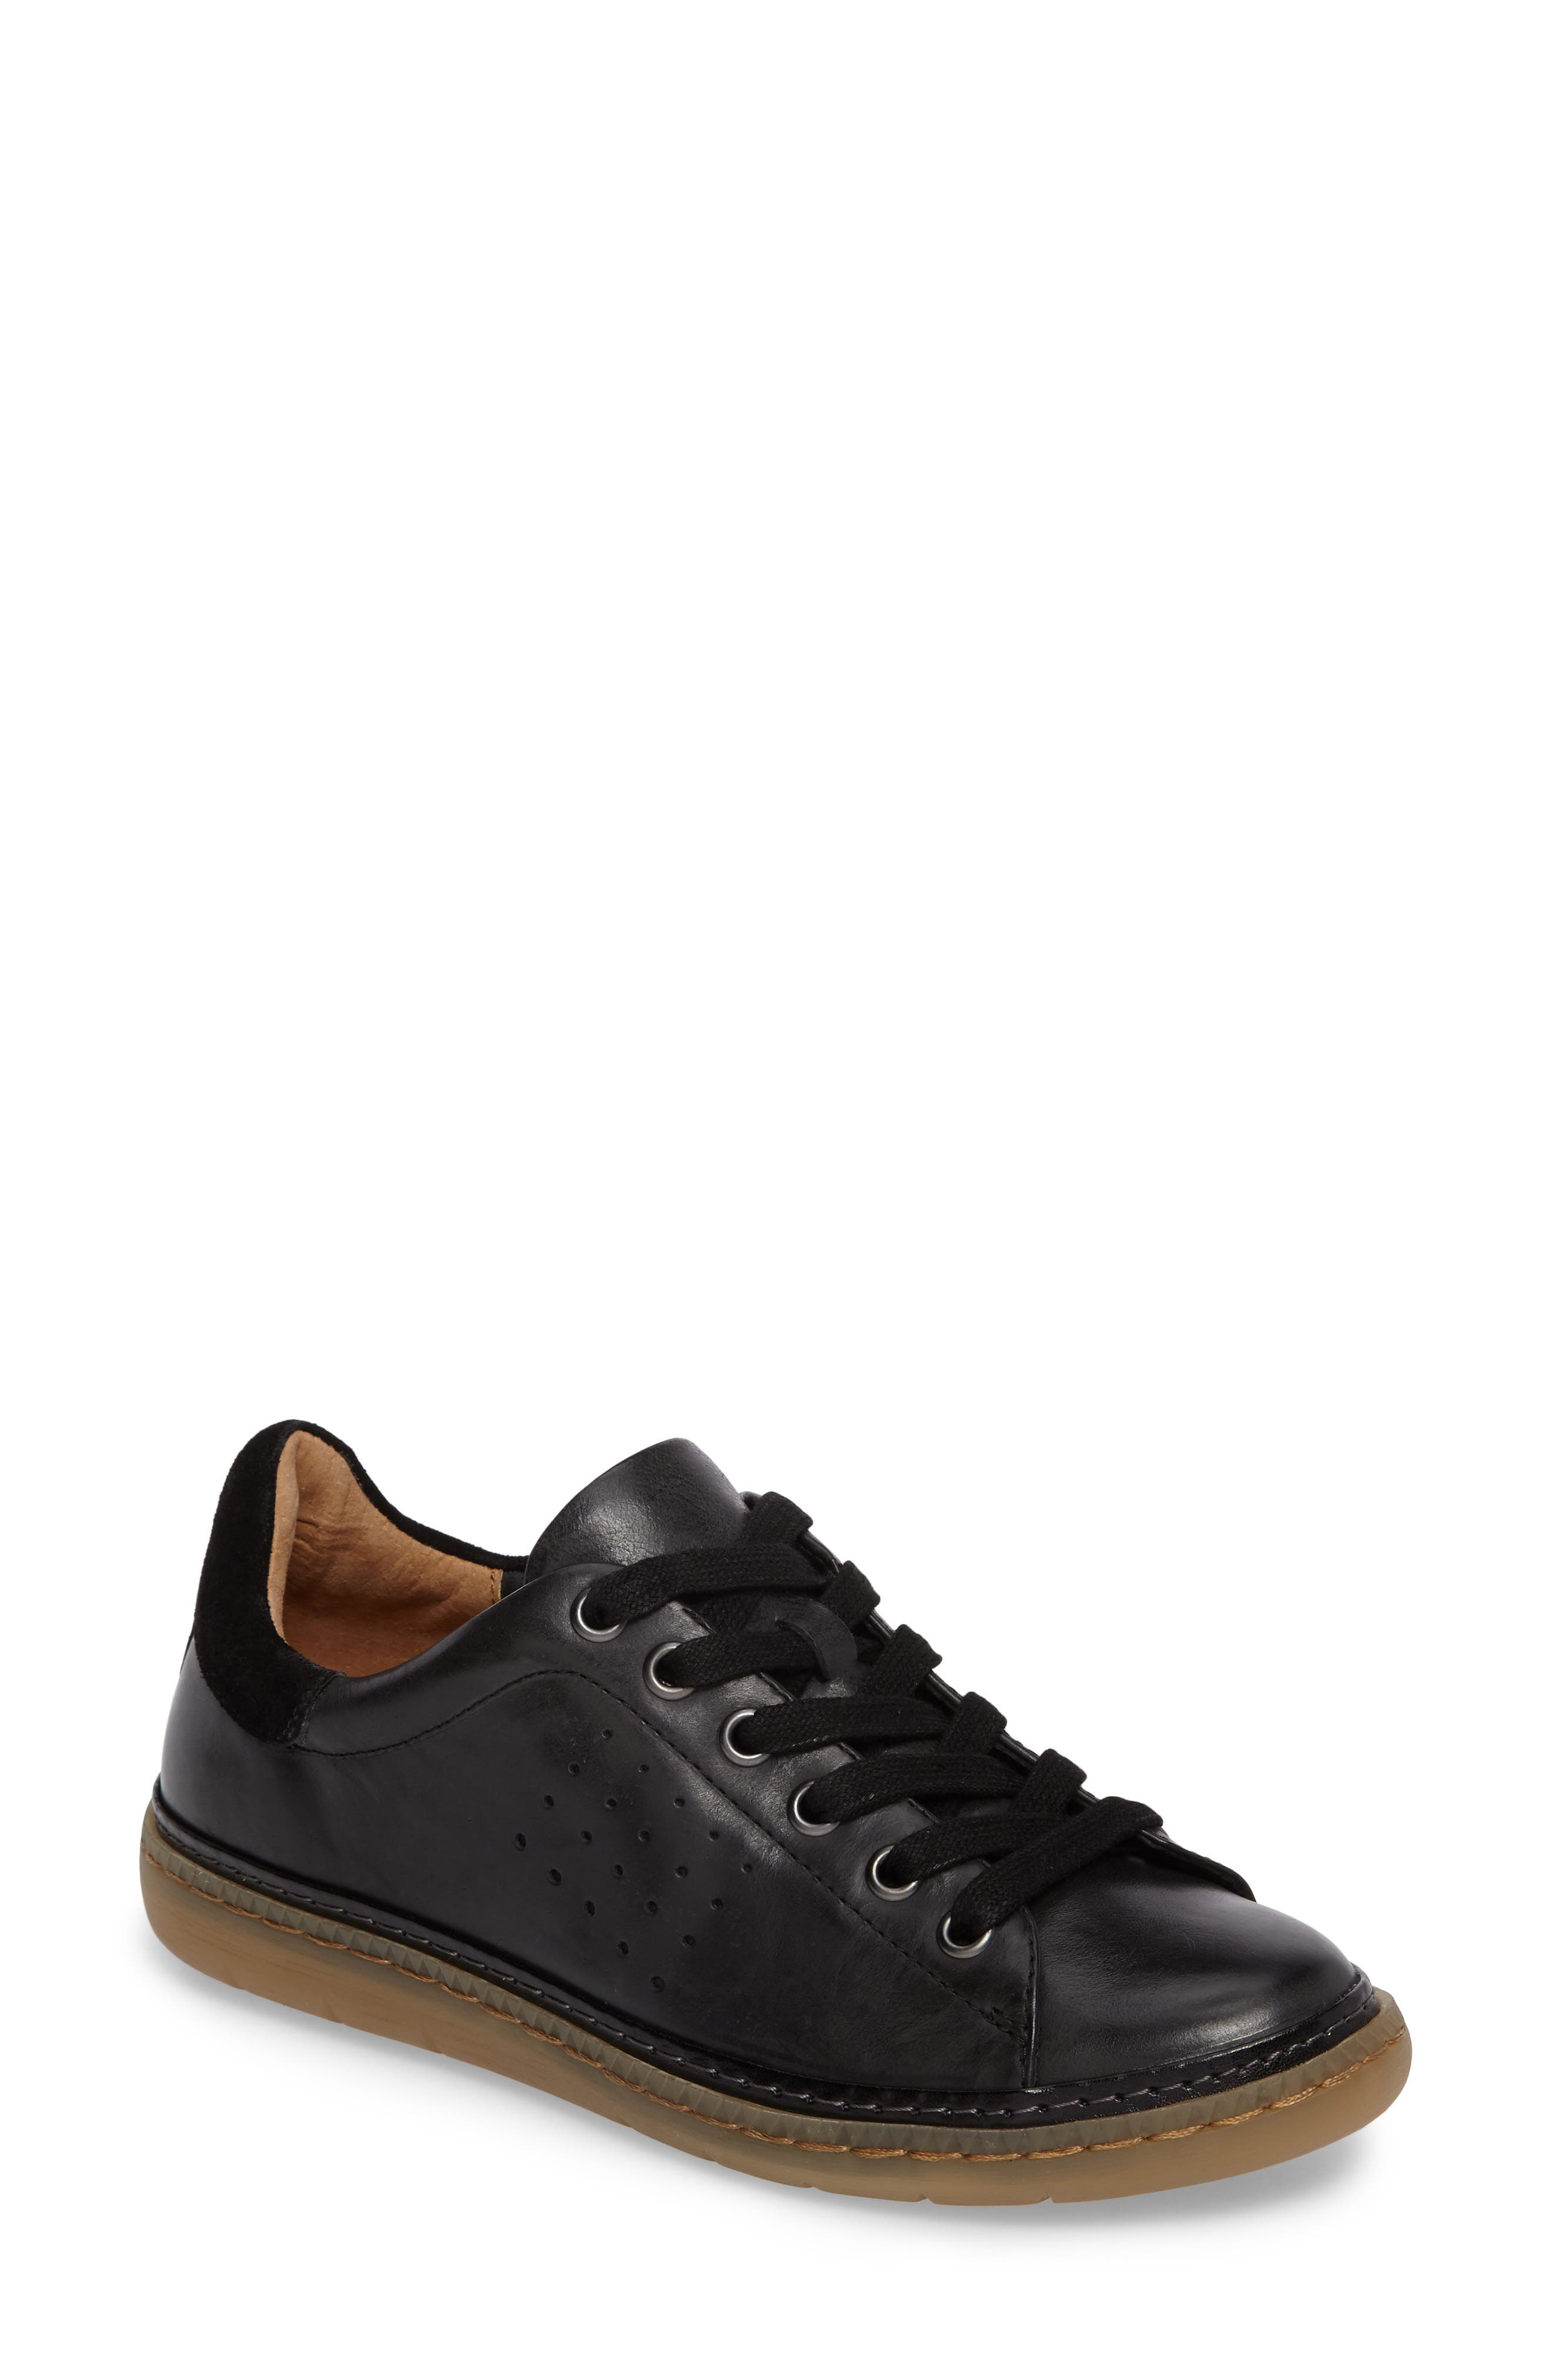 Arianna Sneaker,                         Main,                         color, 001